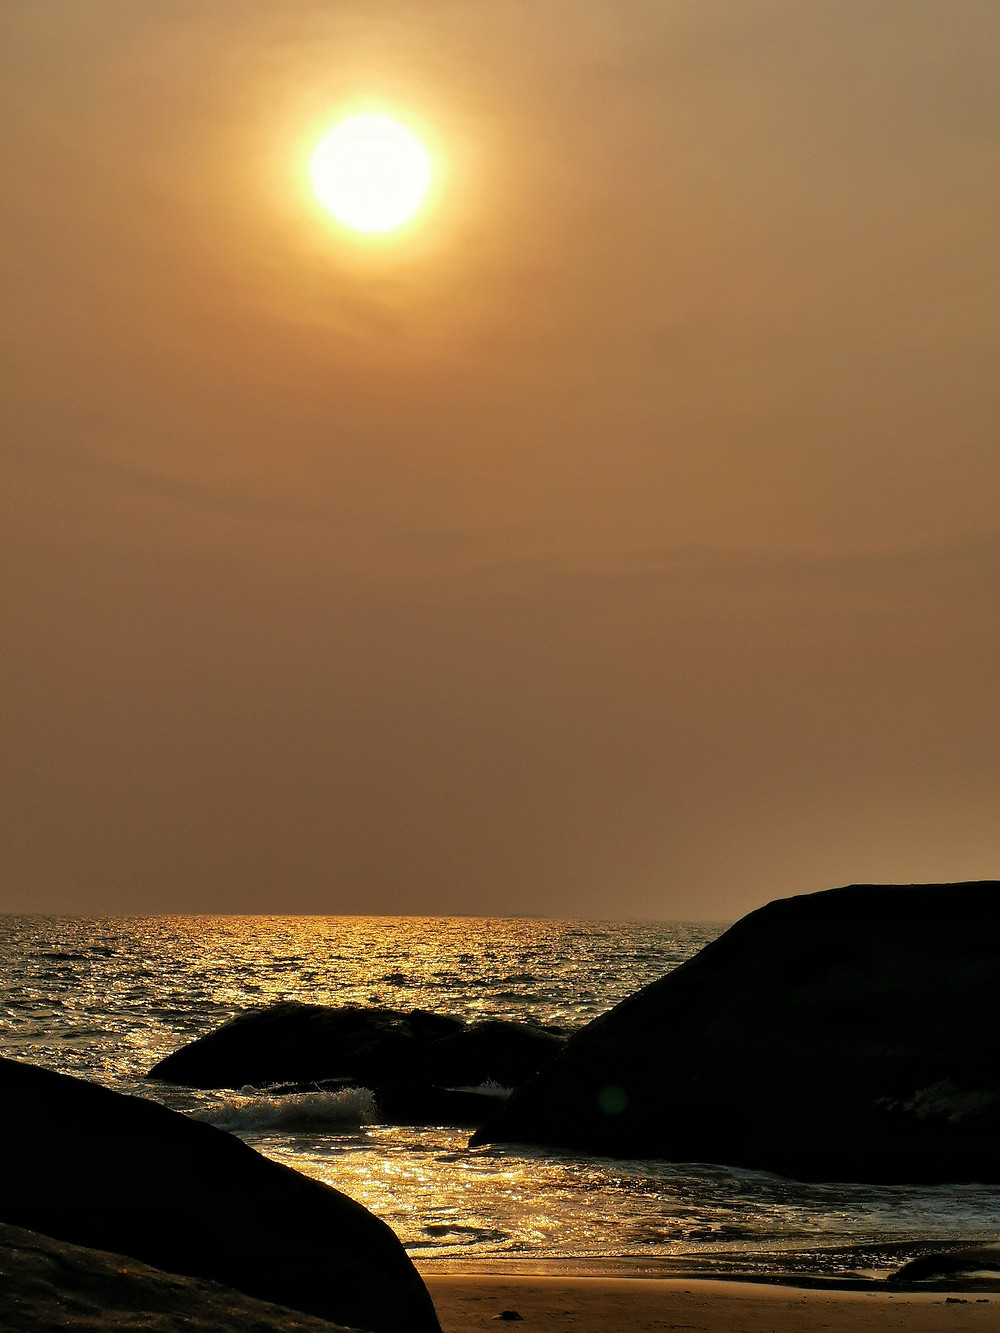 Sunset at the Kaup Beach, Karnataka